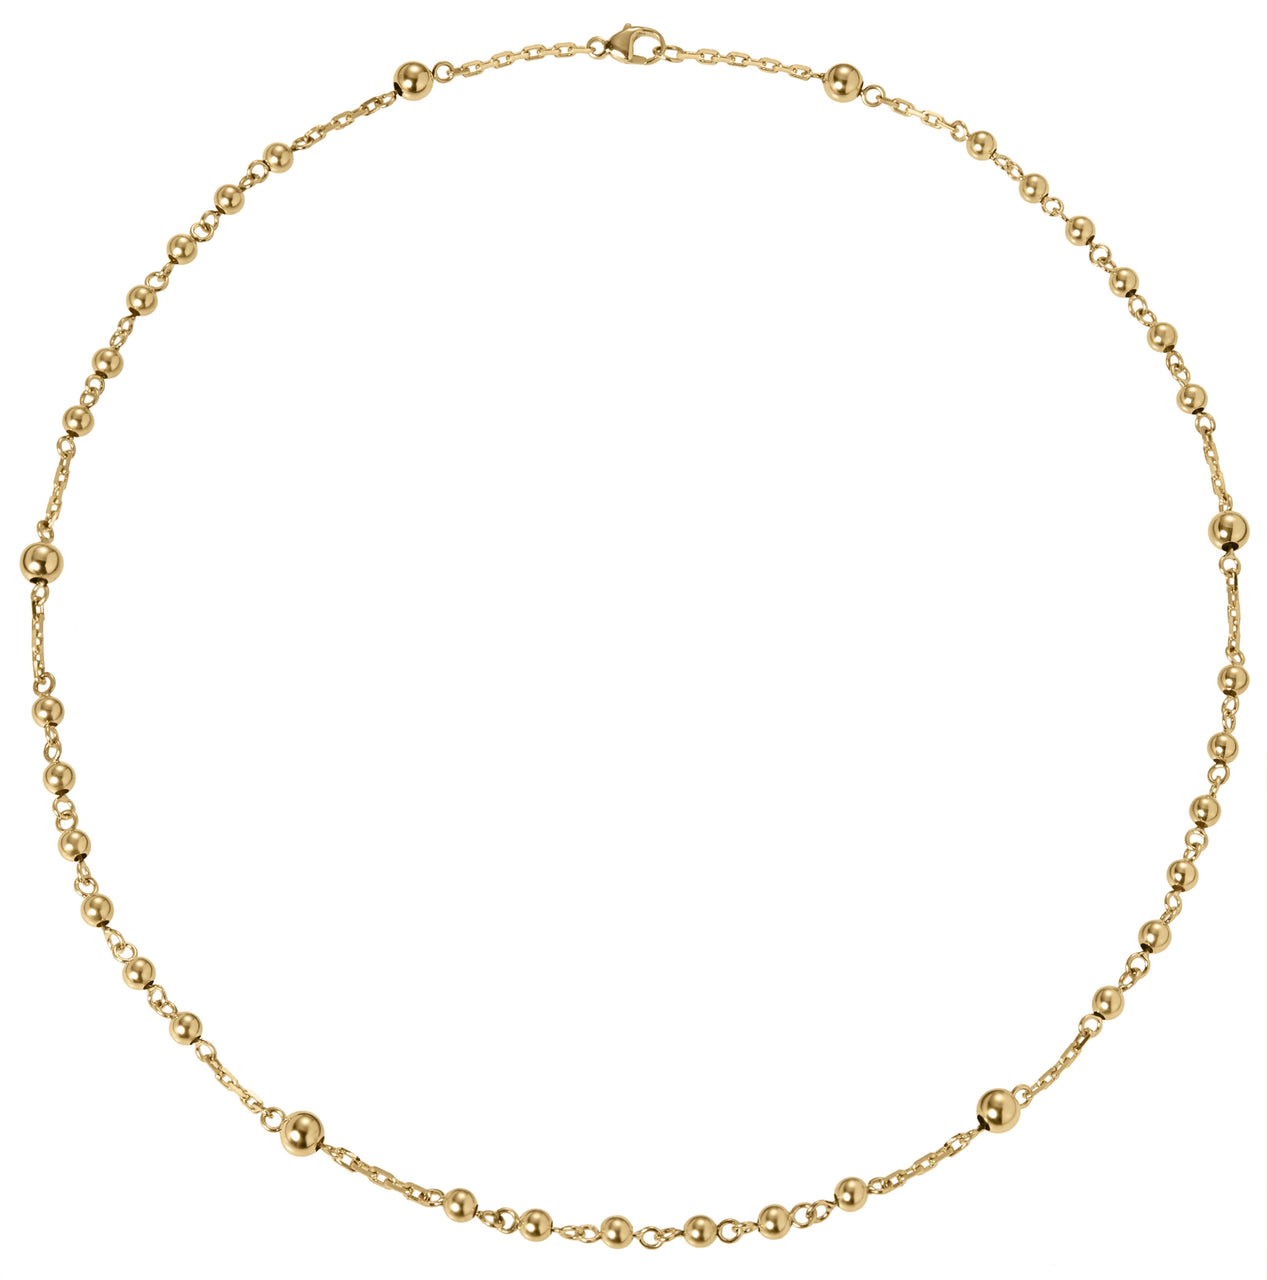 everyday modern rosary bead short chain necklace in 18k gold by finn by candice pool neistat